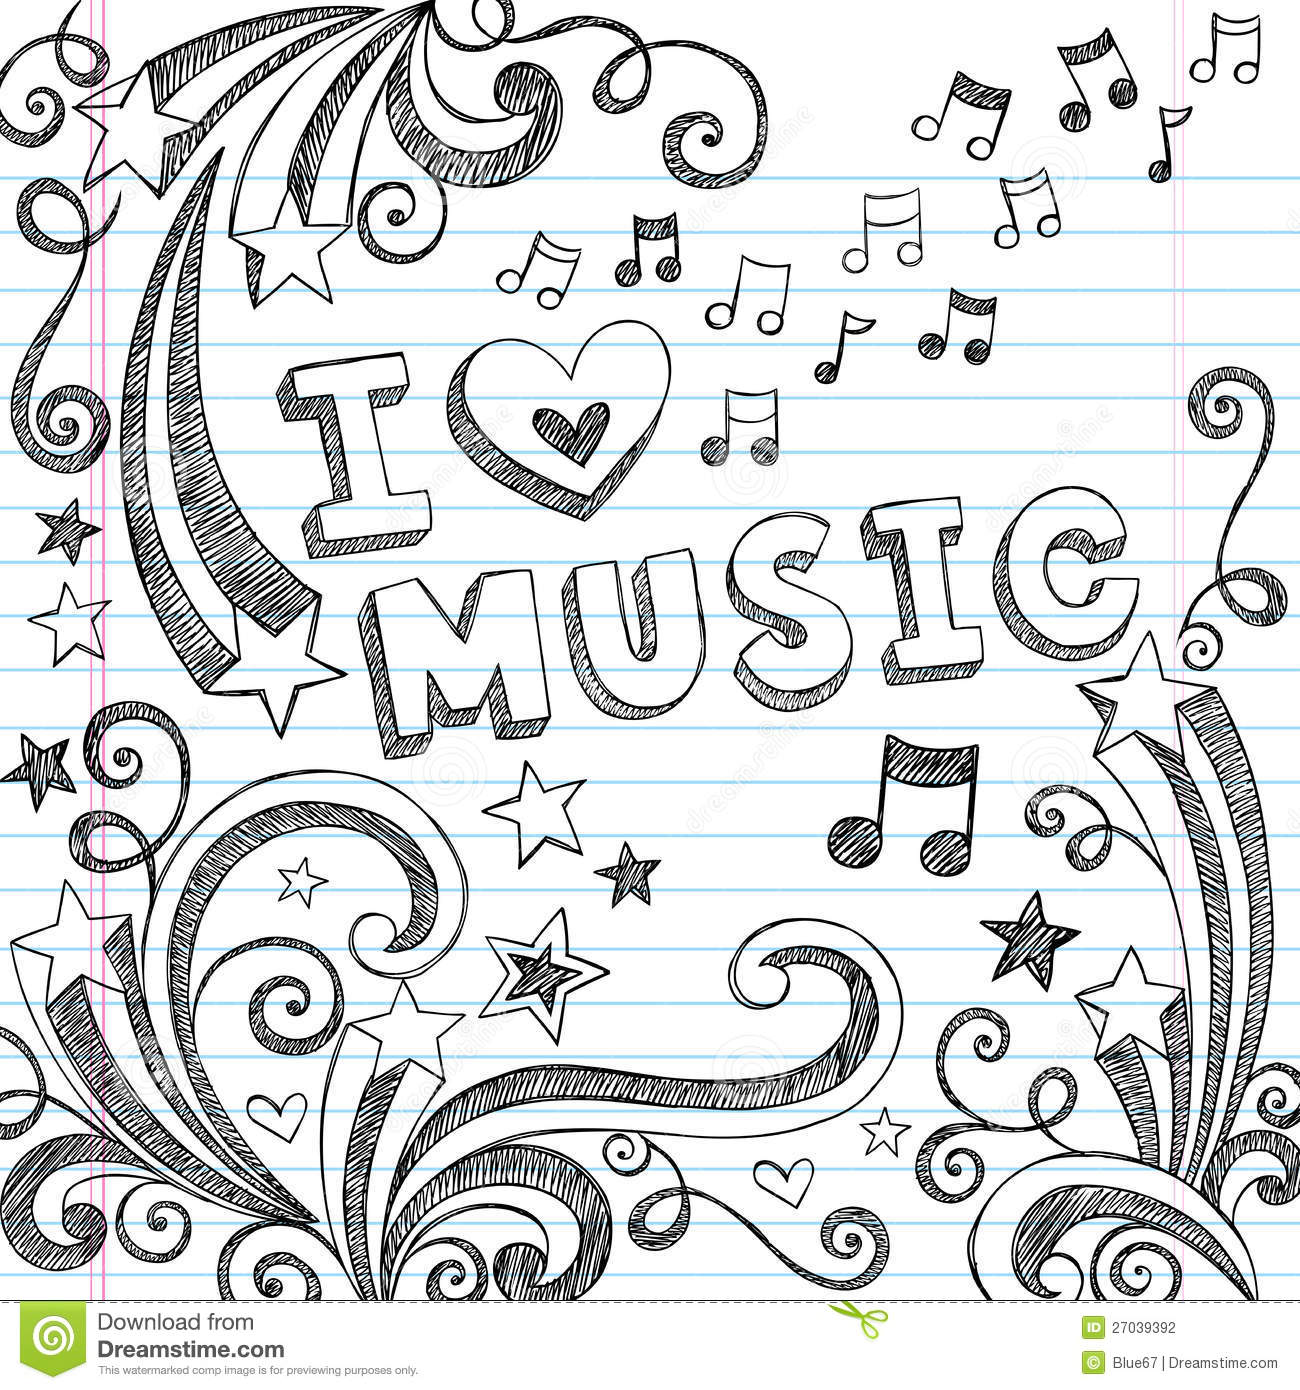 Music sketchy notebook doodles vector illustration stock for Schoolhouse music